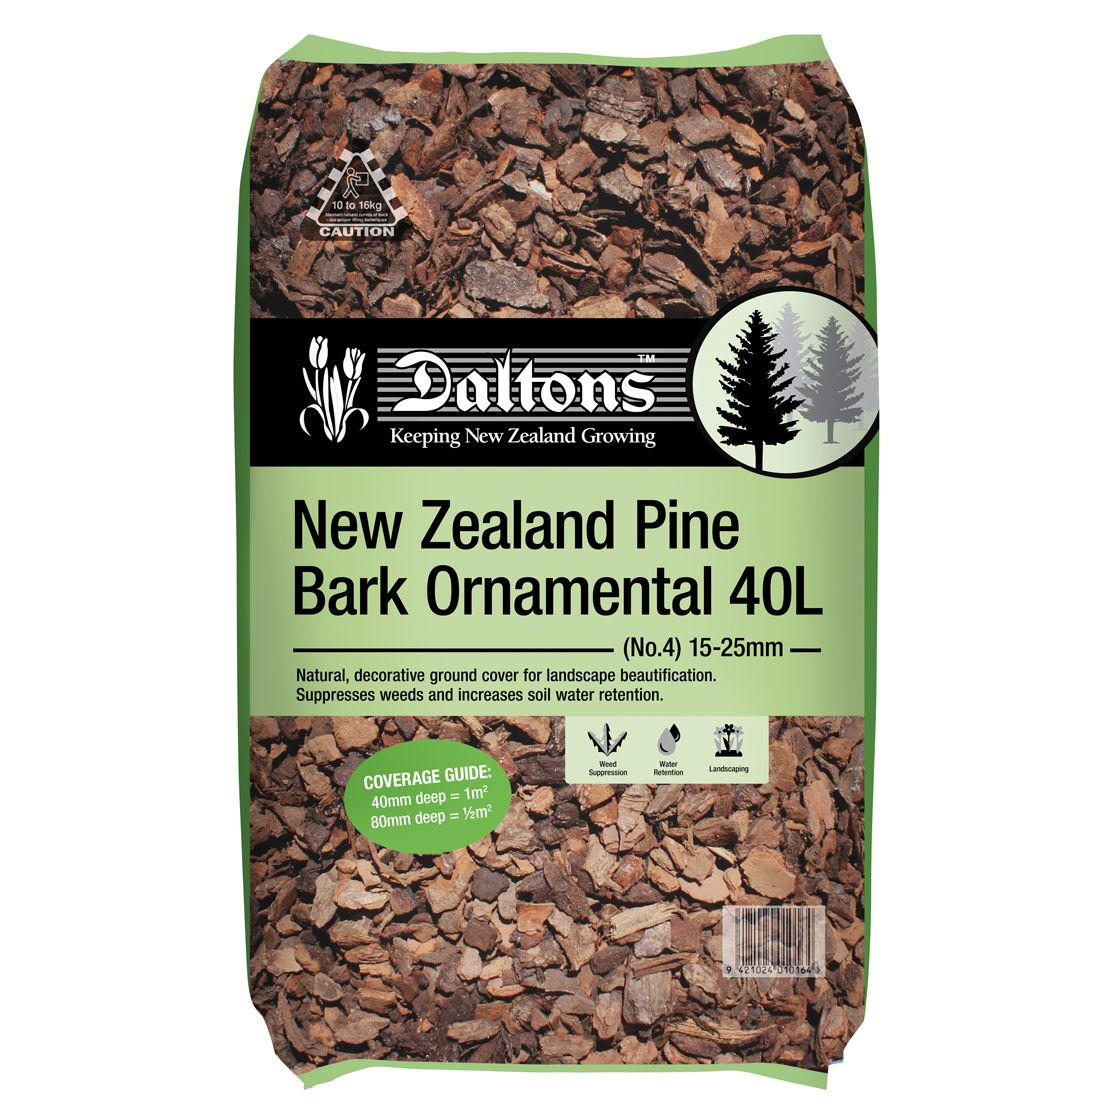 NZ Pine Bark Ornamental 40L Bag